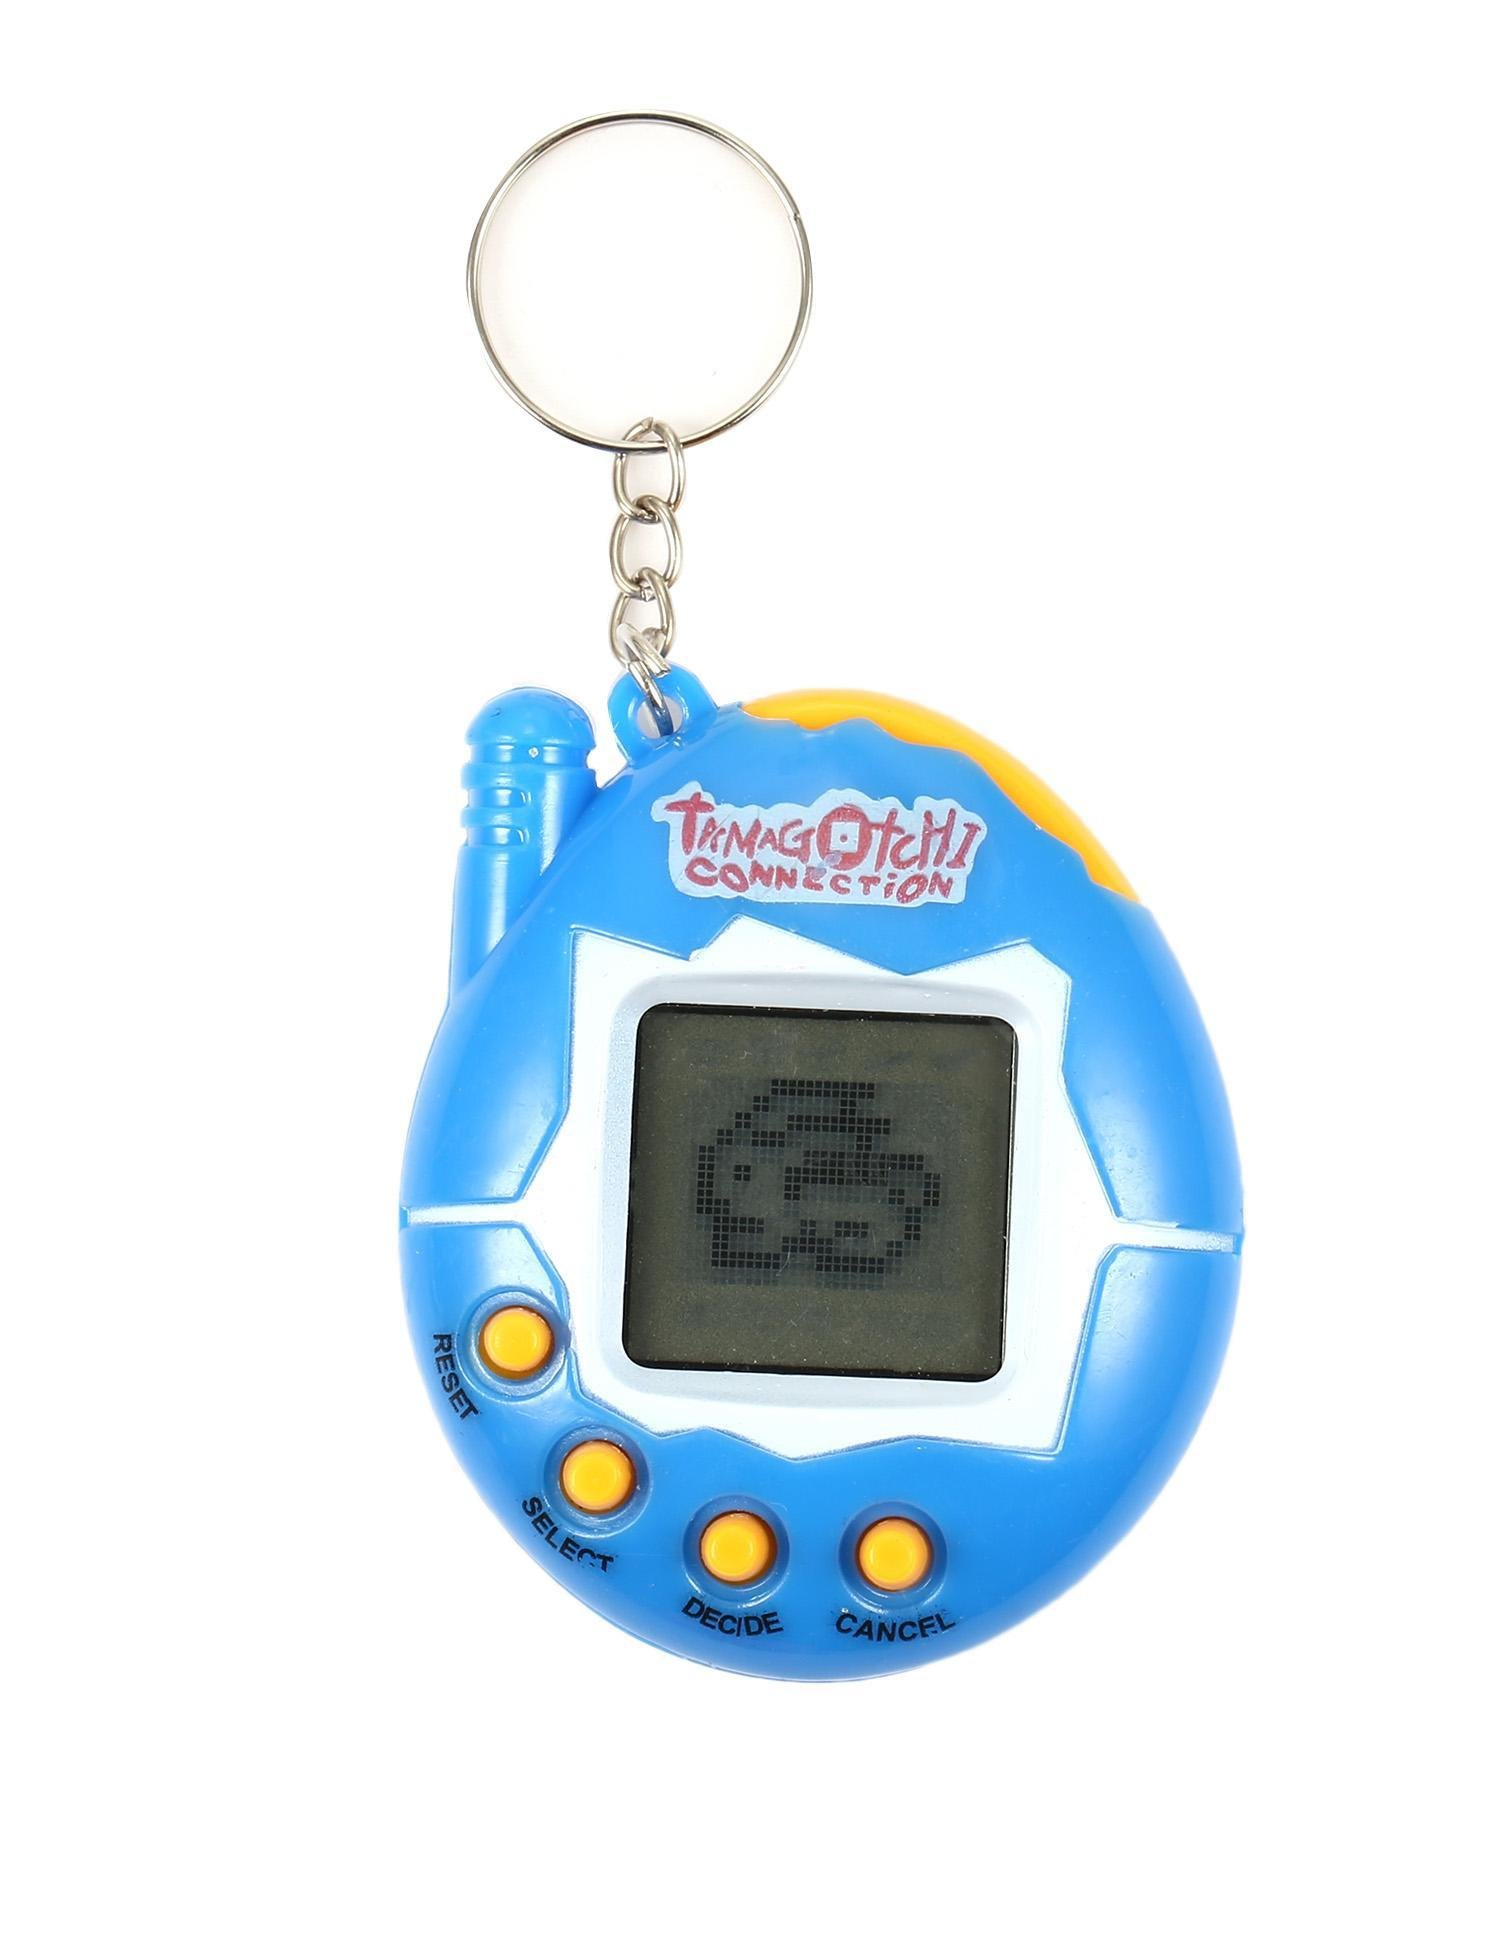 Youcoco Child Nostalgic Tamagotchi Electronic Virtual Cyber Tiny Pet Toy Game Machine (Solid Color)